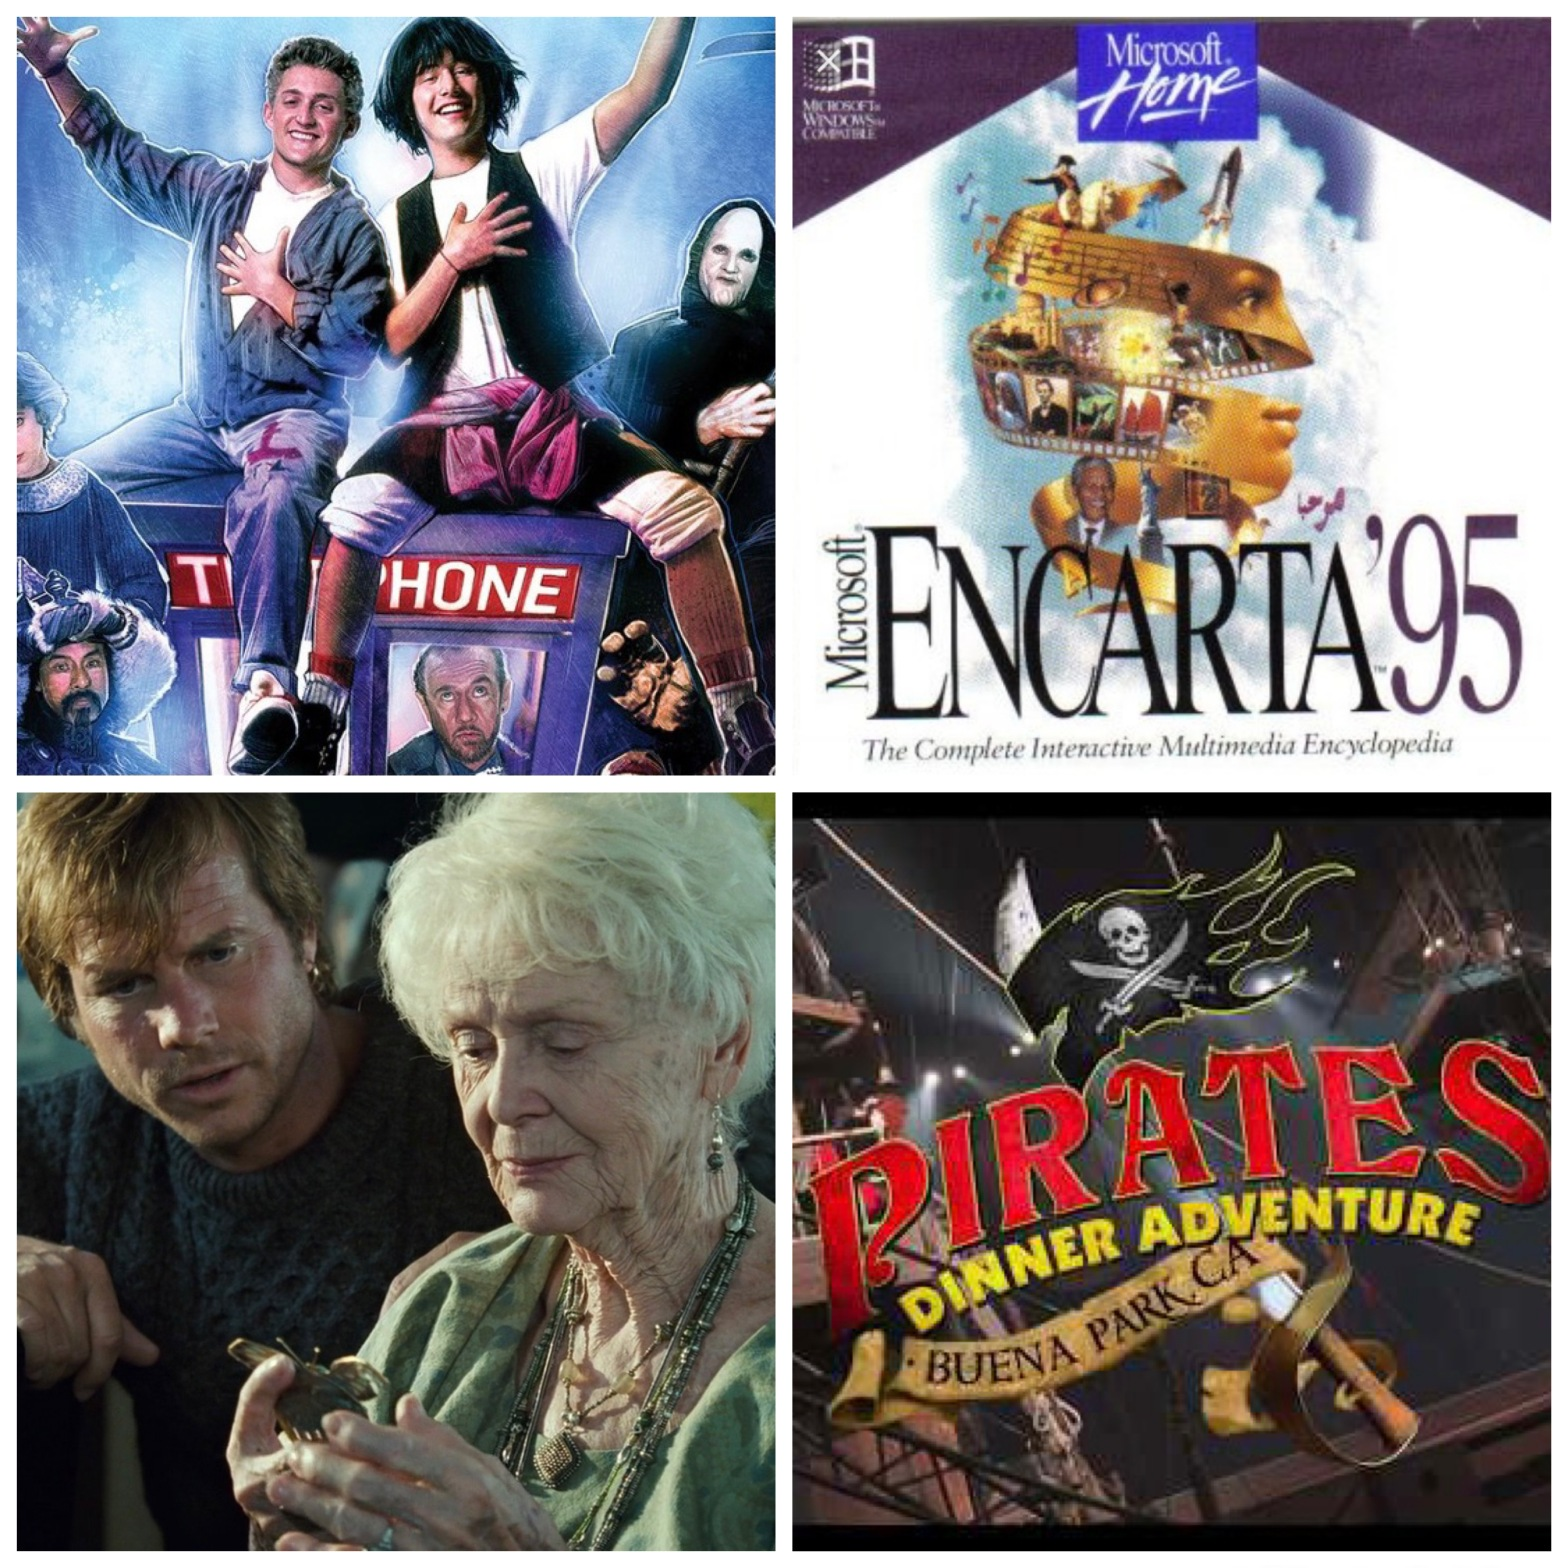 Bill and Ted's Excellent Adventure. Microsoft Encarta '95. Old lady Rose from James Cameron's Titanic. Pirates Dinner Adventure in Buena Park, CA.